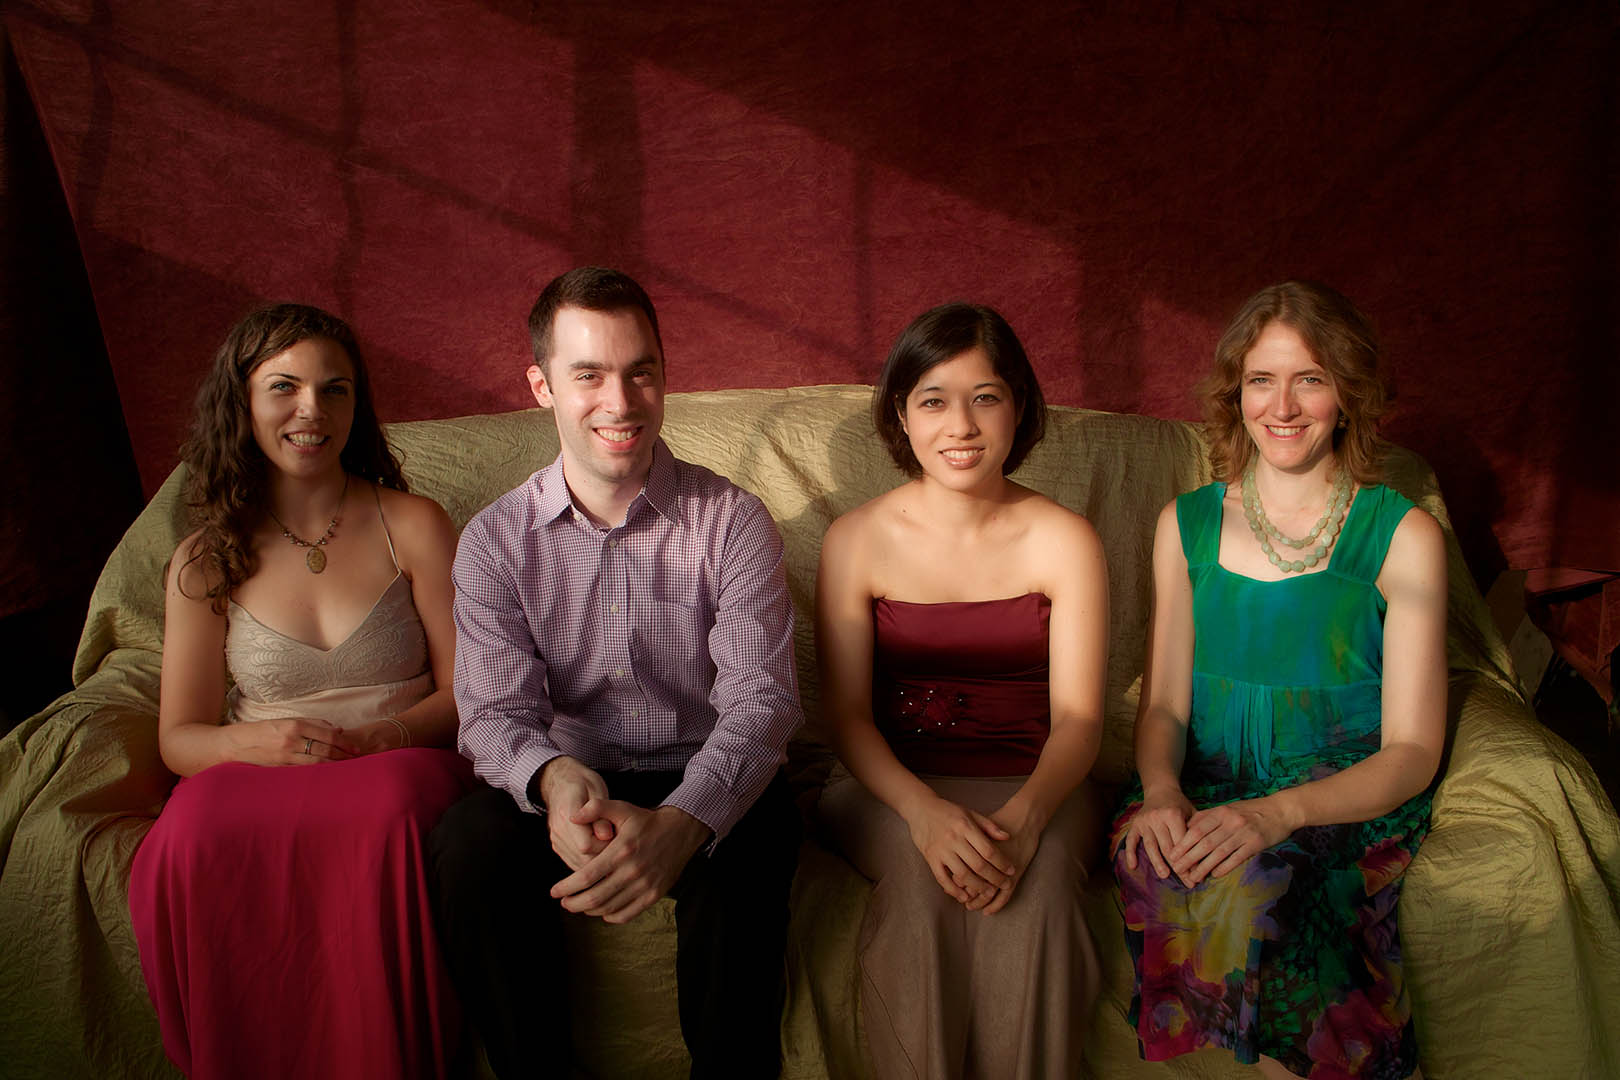 Dedicated to living composers, the Momenta Quartet performs on May 8.